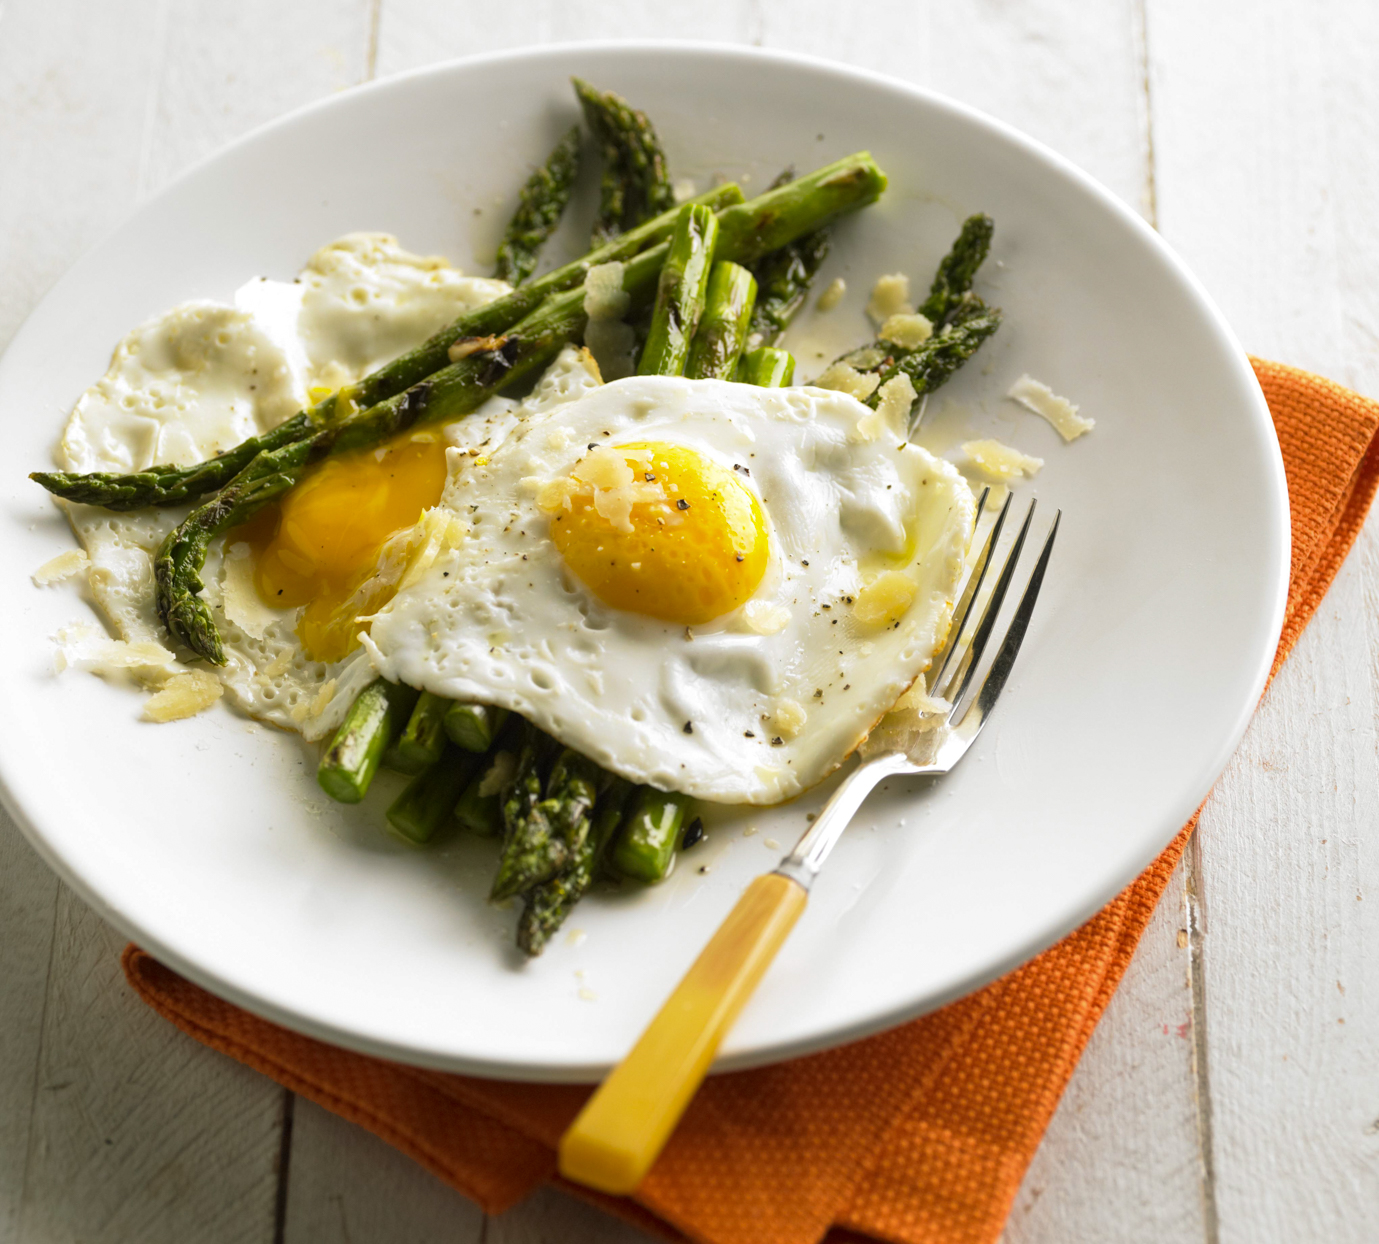 Grilled Asparagus with Fried Eggs